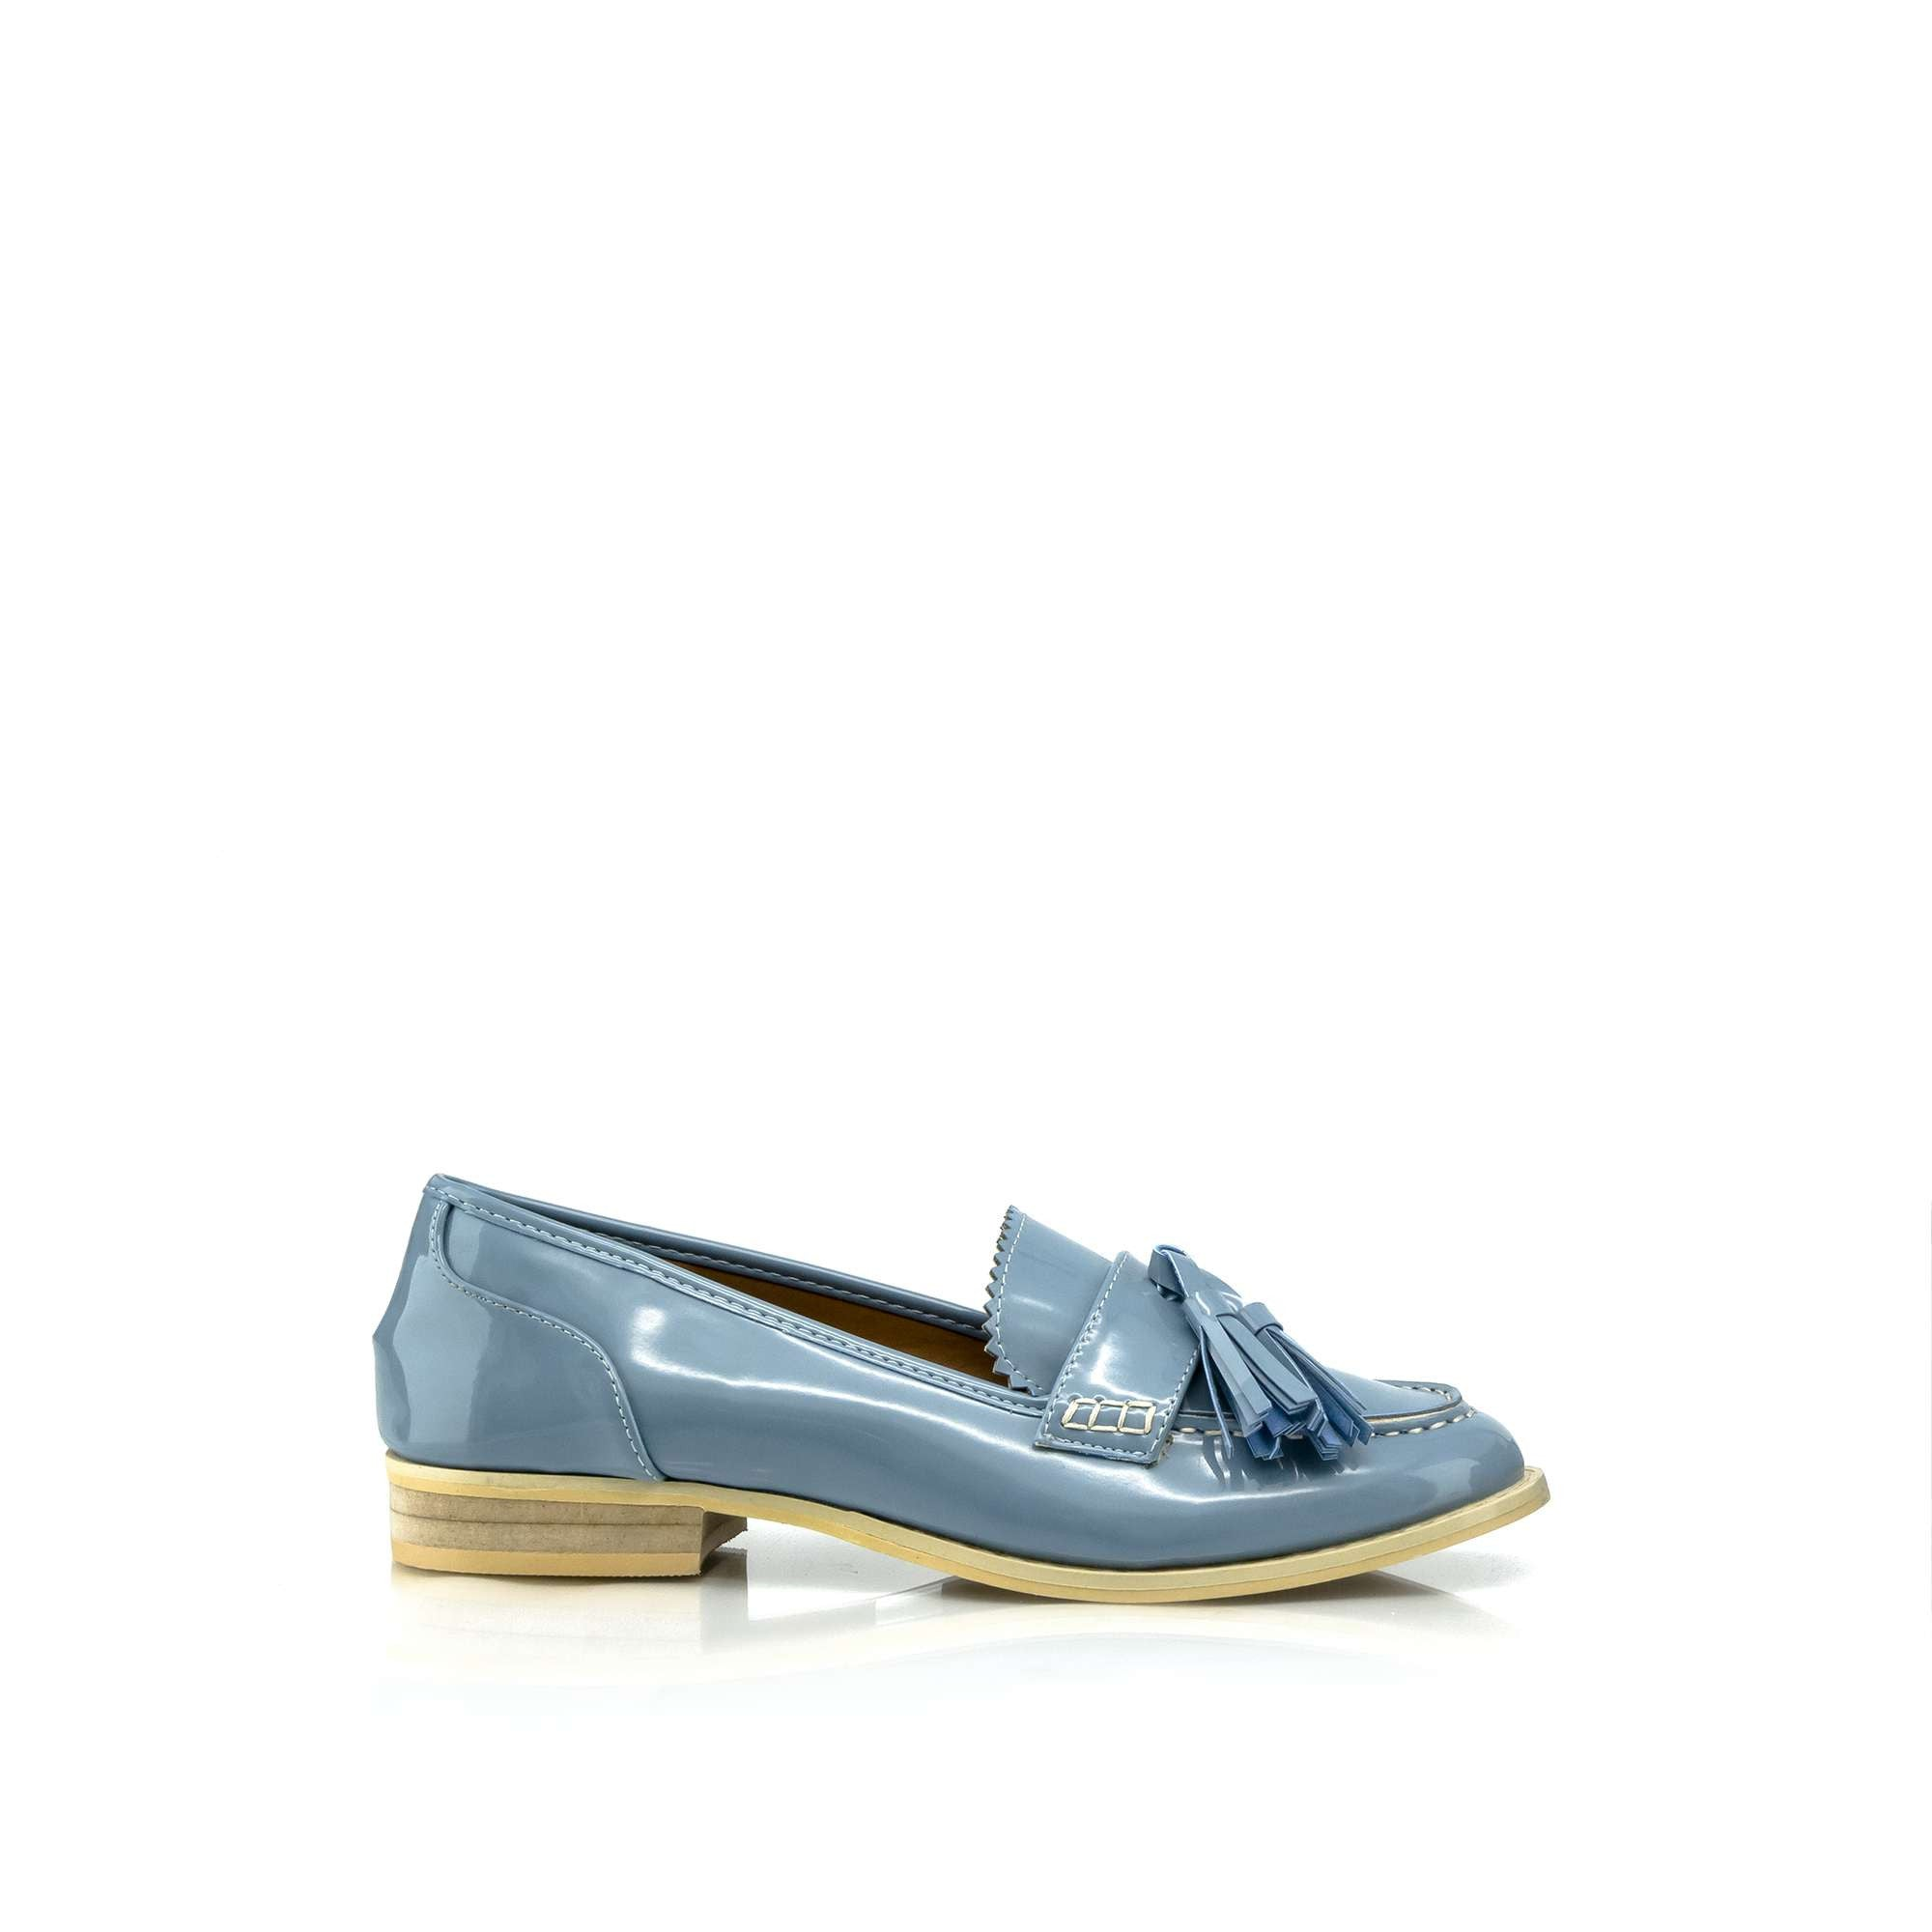 CAROLINA Tassel Loafers